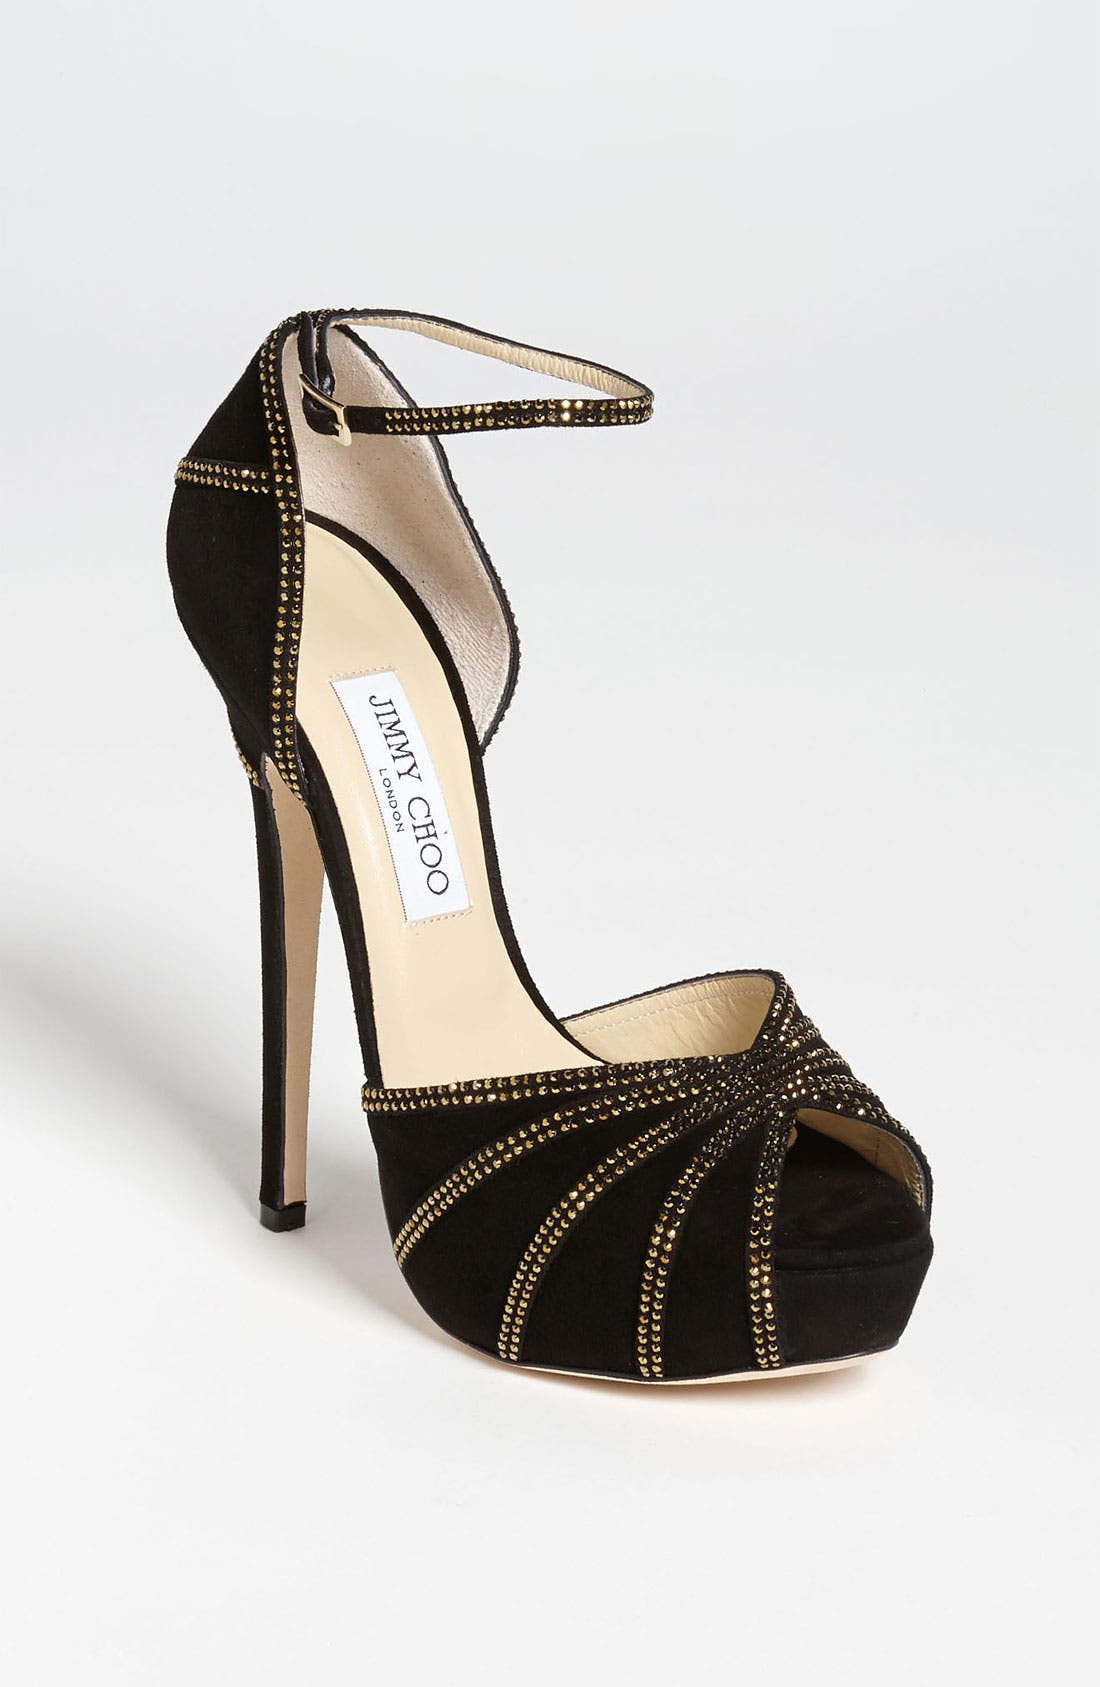 Alternate Image 1 Selected - Jimmy Choo 'Kalpa' Sandal